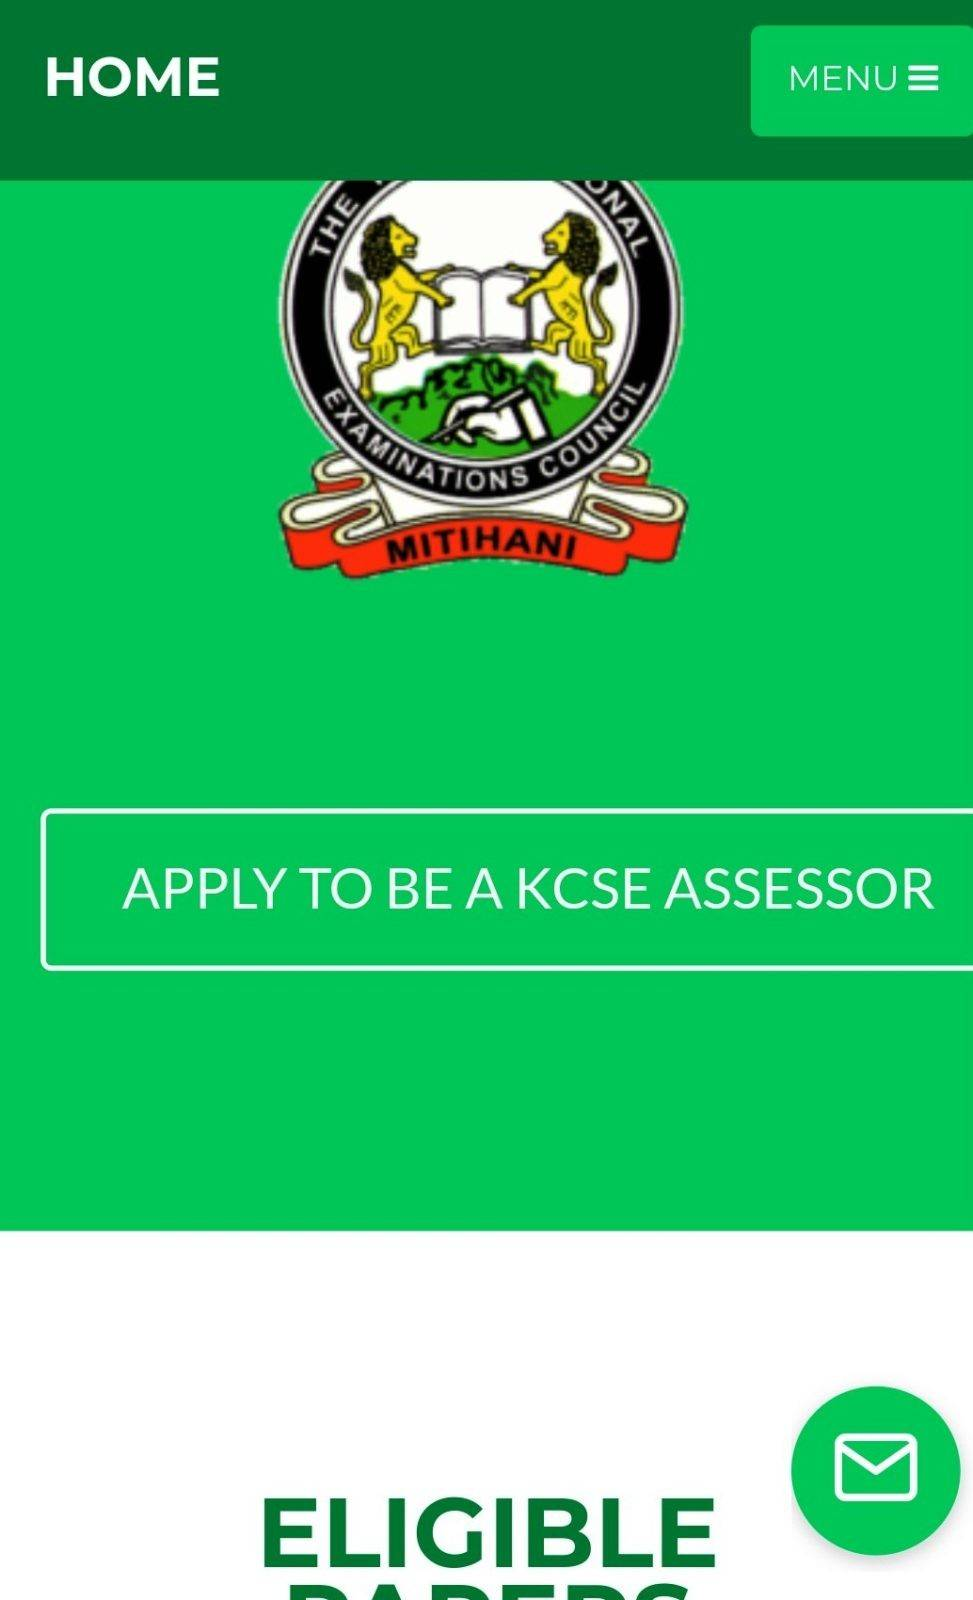 2020 KCSE examiners. KNEC contracted professionals.